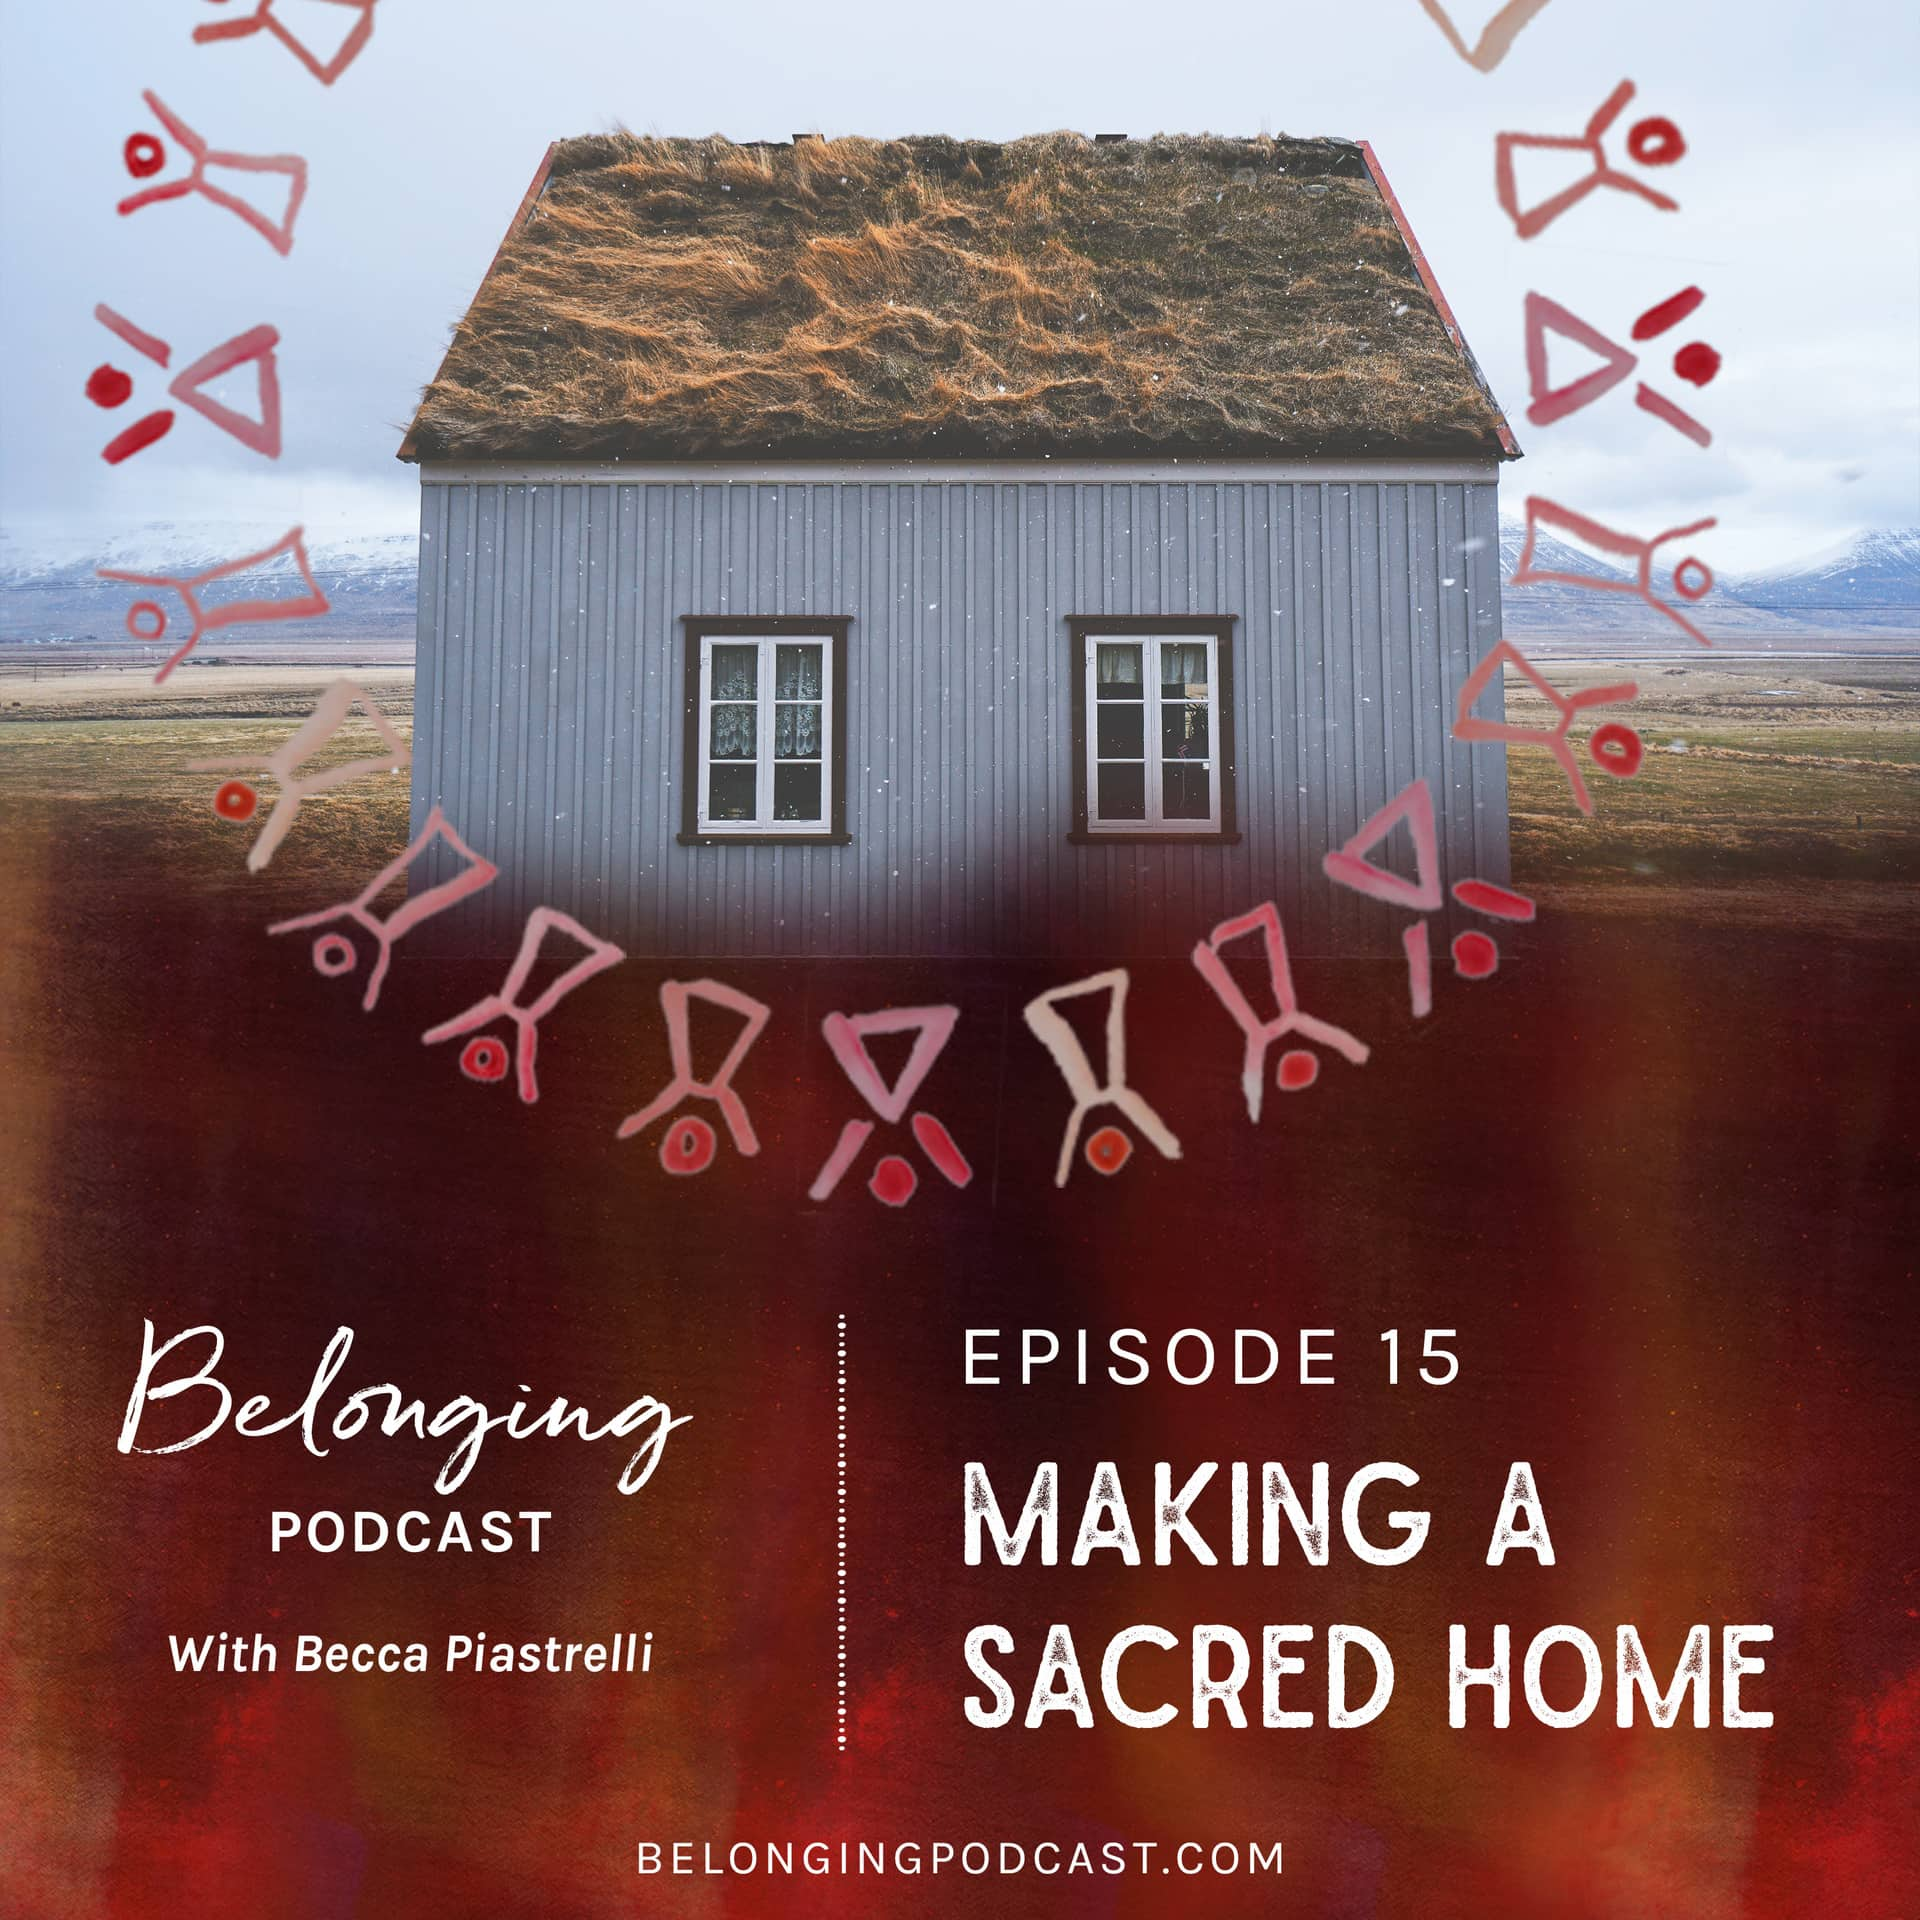 Making a Sacred Home